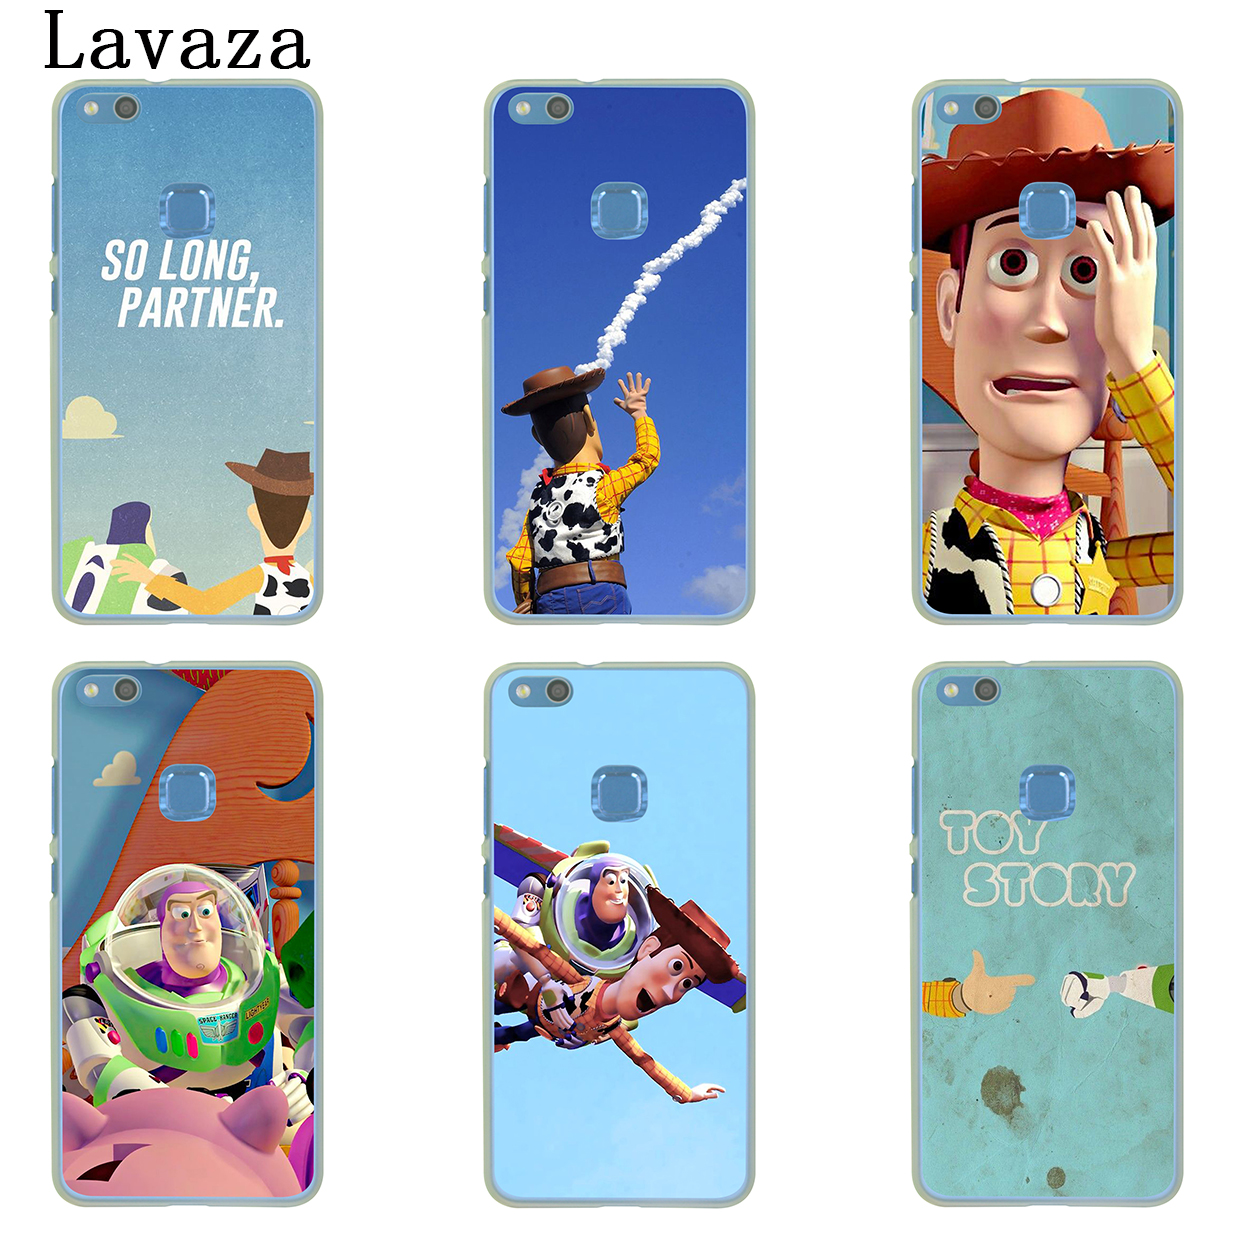 Fashion Style Toy Story Pizza Planet Hard Phone Cover Case For Huawei Honor Play 10 8c 8x 8 9 Lite 7c 7x 6a 7a 6c Pro Cellphones & Telecommunications